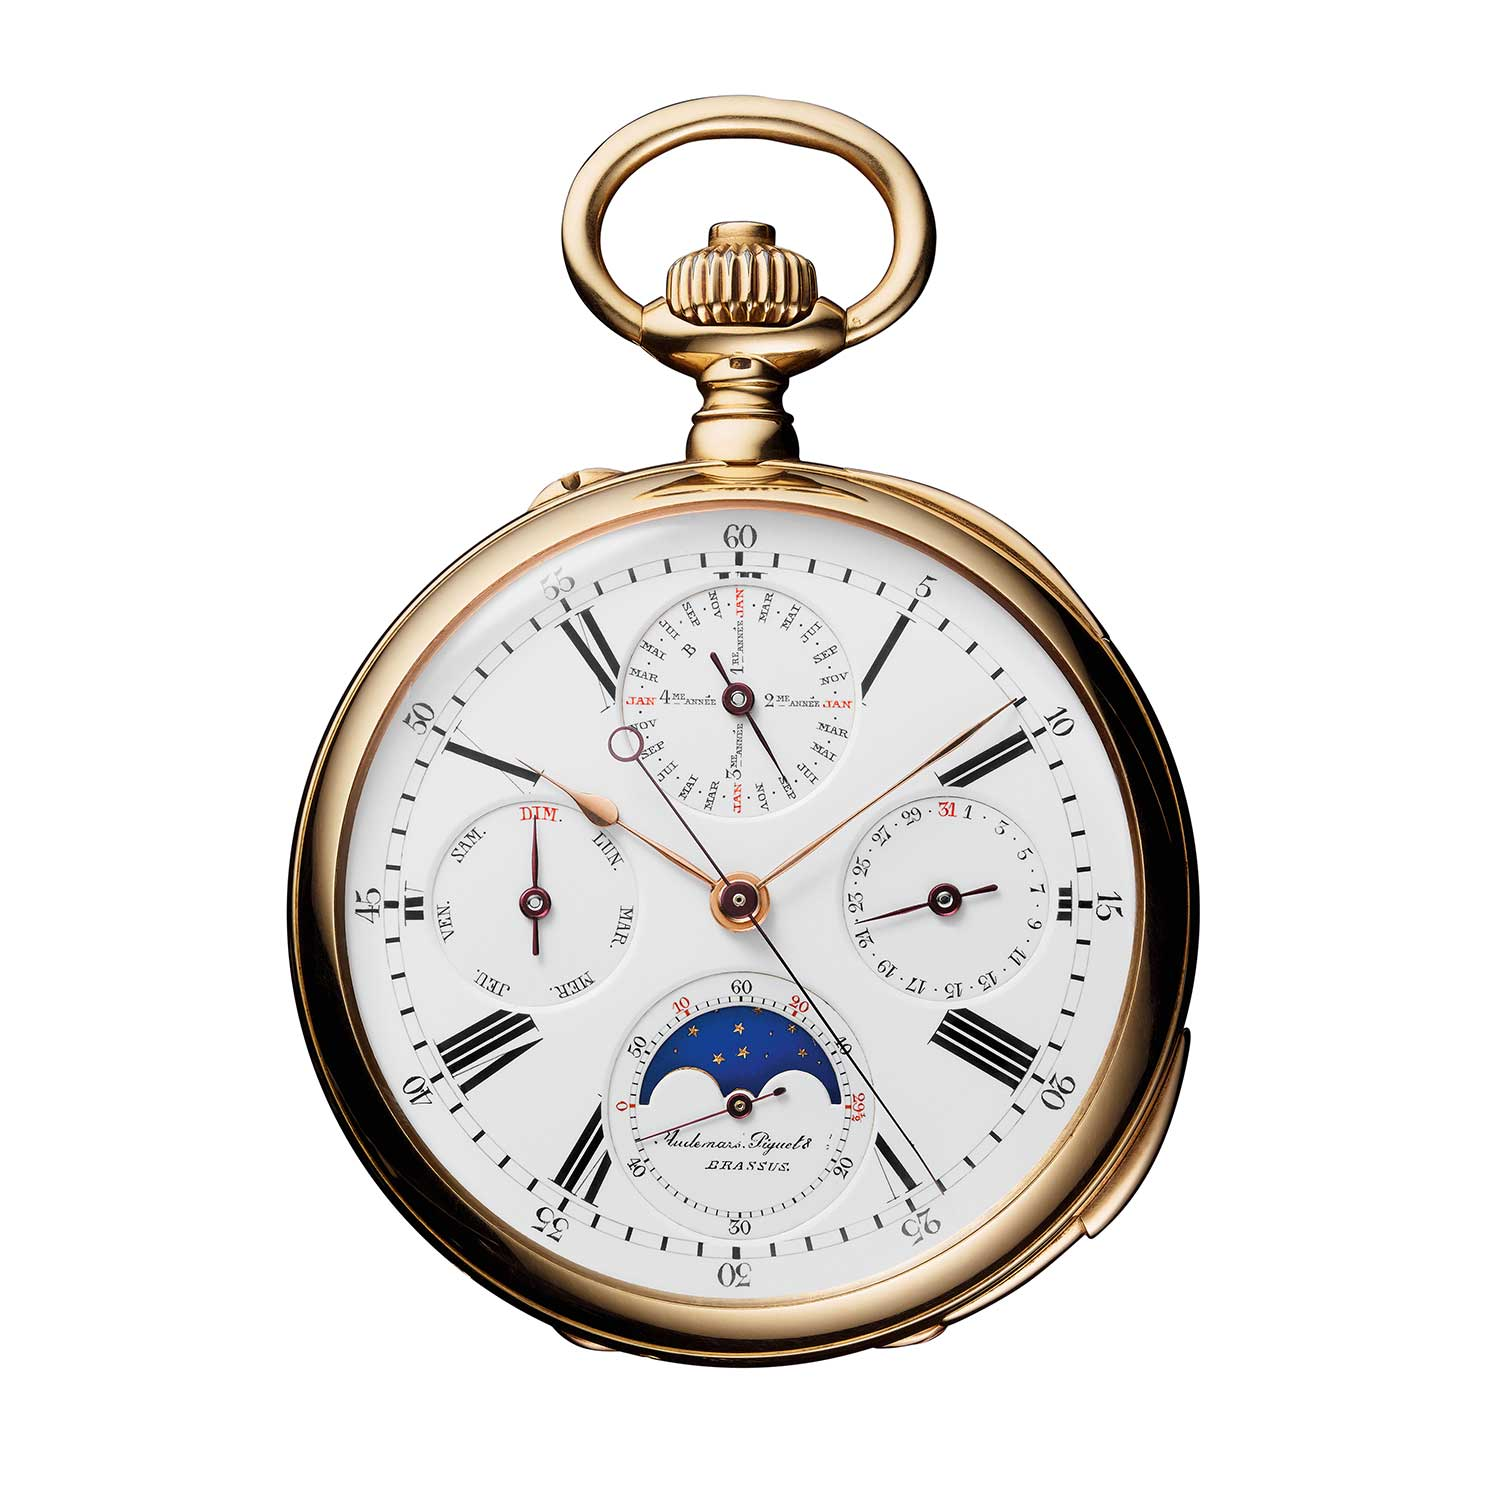 Jules Louis Audemars' school watch was completed in its first incarnation prior to 1875, and transformed in the workshops over the following two decades. The complicated 18-carat pink gold pocket-watch masterpiece combined a perpetual calendar with a quarter repeating mechanism, and included the rarely seen independent deadbeat second function.